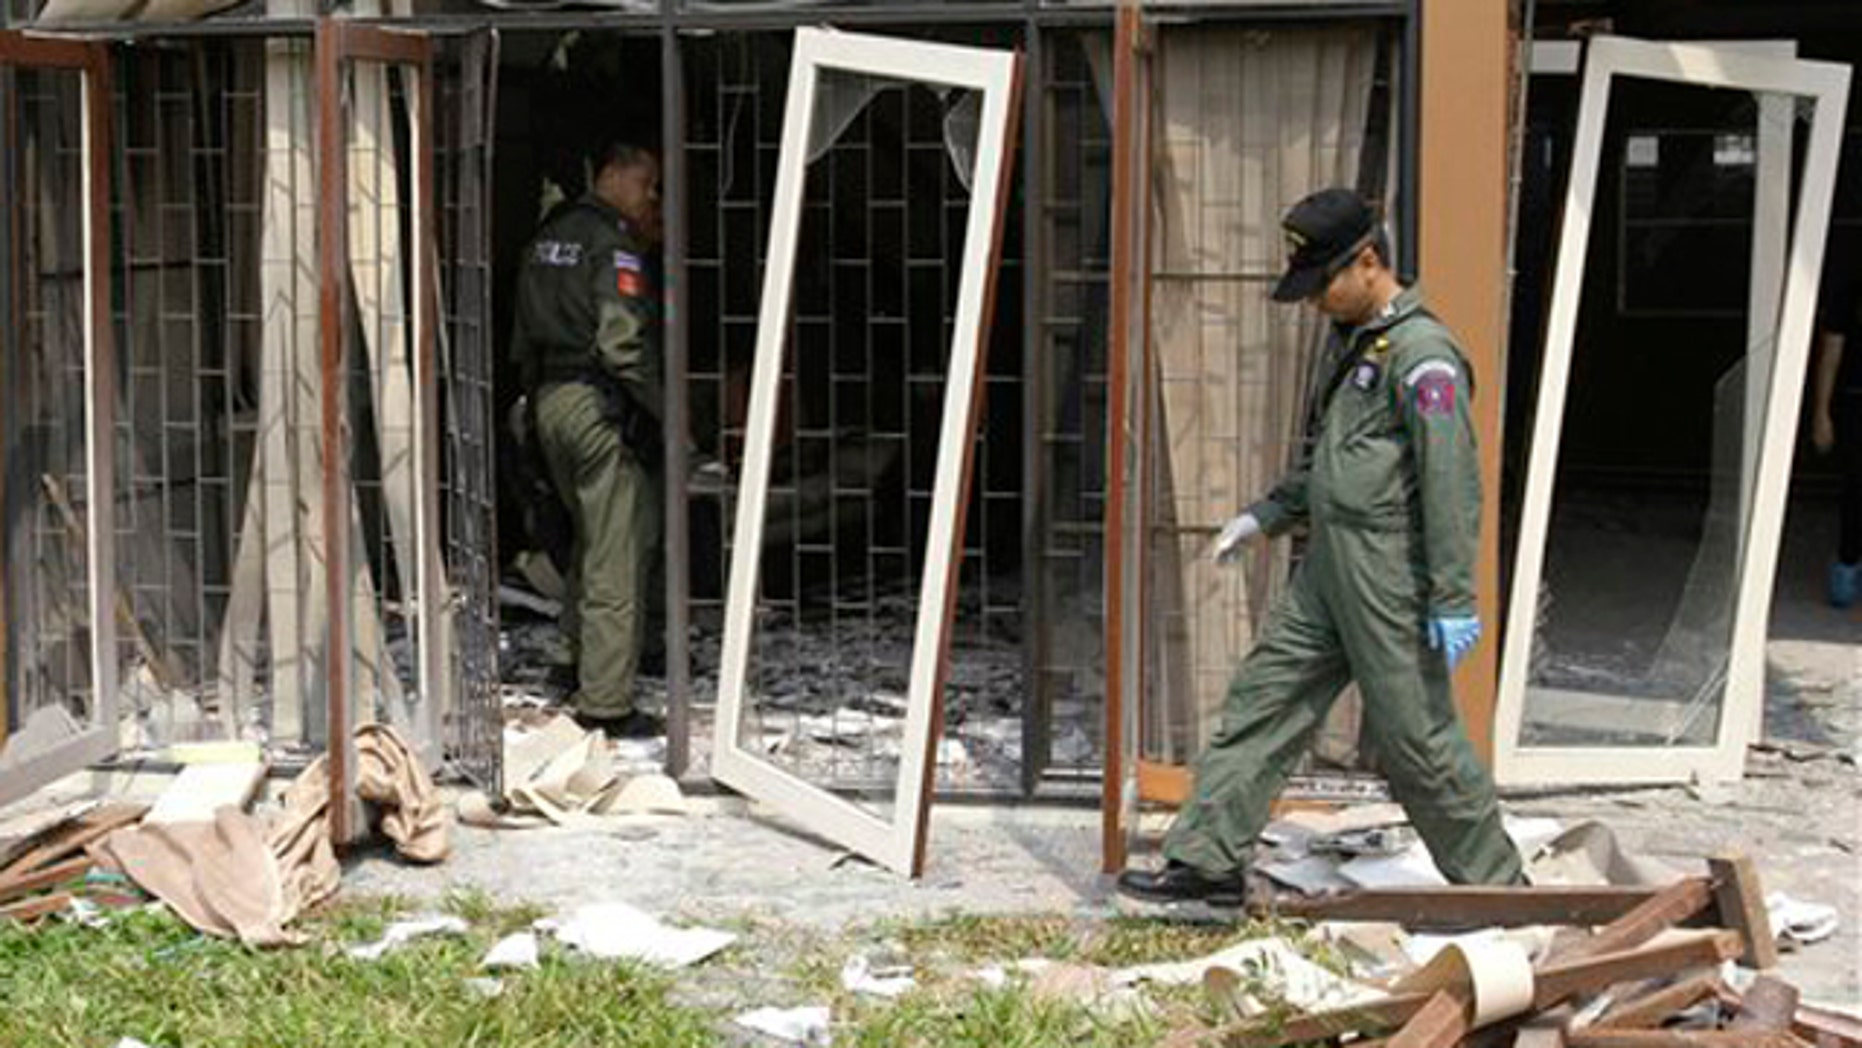 Feb. 15, 2012: Thai Explosive Ordnance Disposal (EOD) officials examine the damage caused by a blast at the house where suspected bomber Saeid Moradi was staying in Bangkok, Thailand.